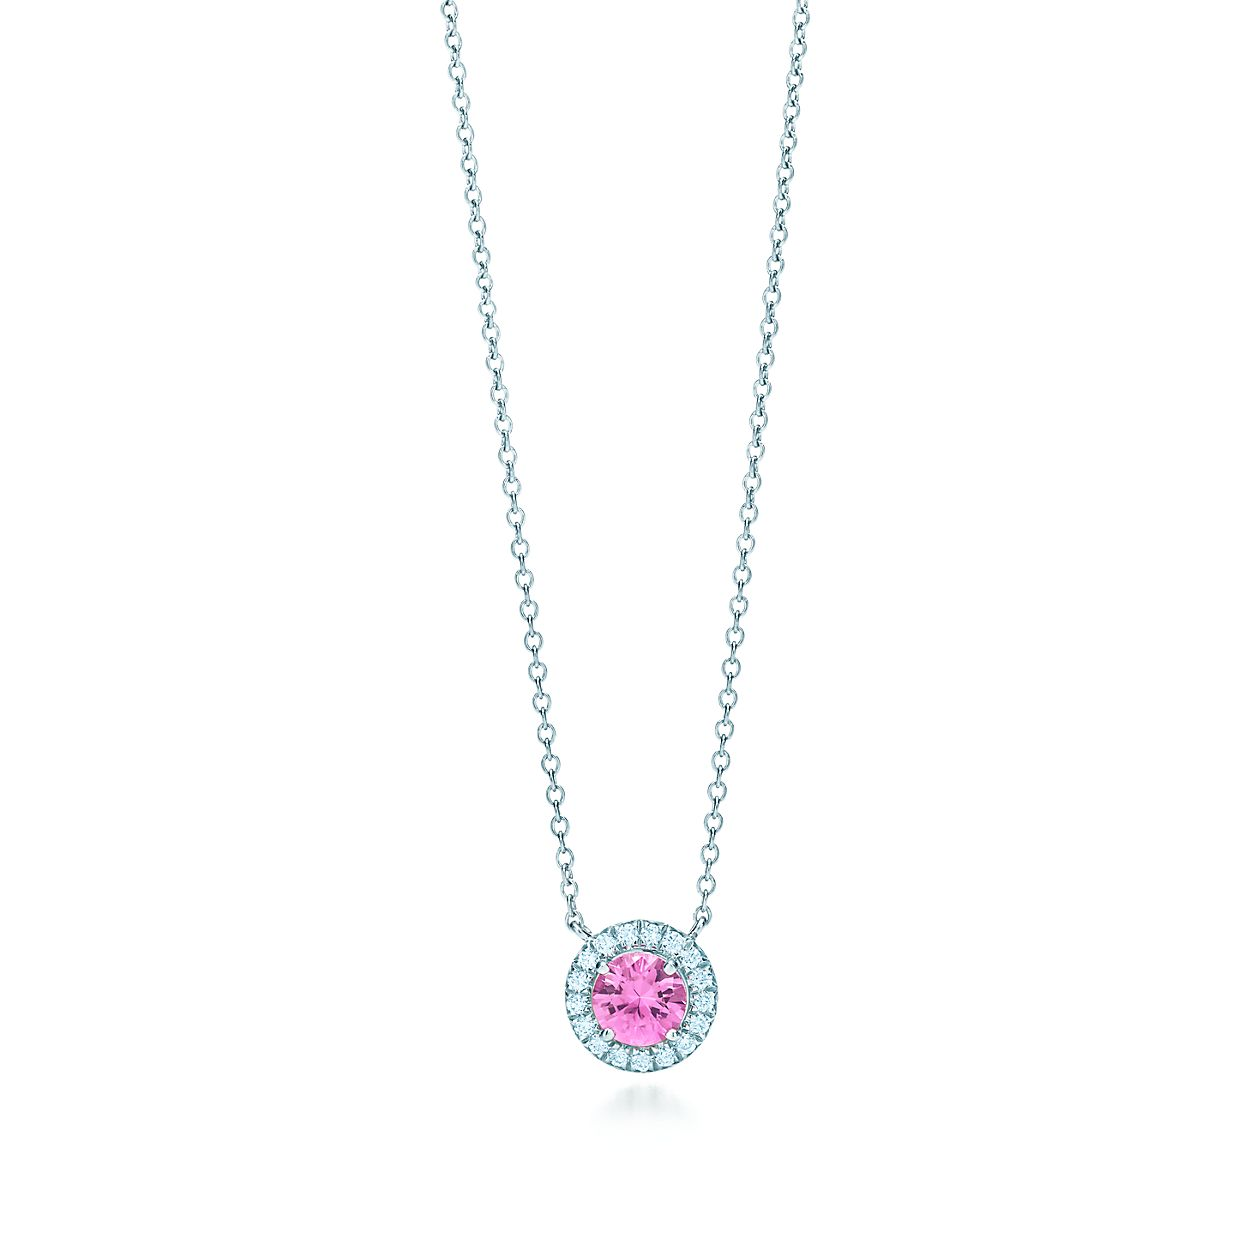 Tiffany soleste pendant in platinum with a pink sapphire and tiffany solestepink sapphire and diamond pendant aloadofball